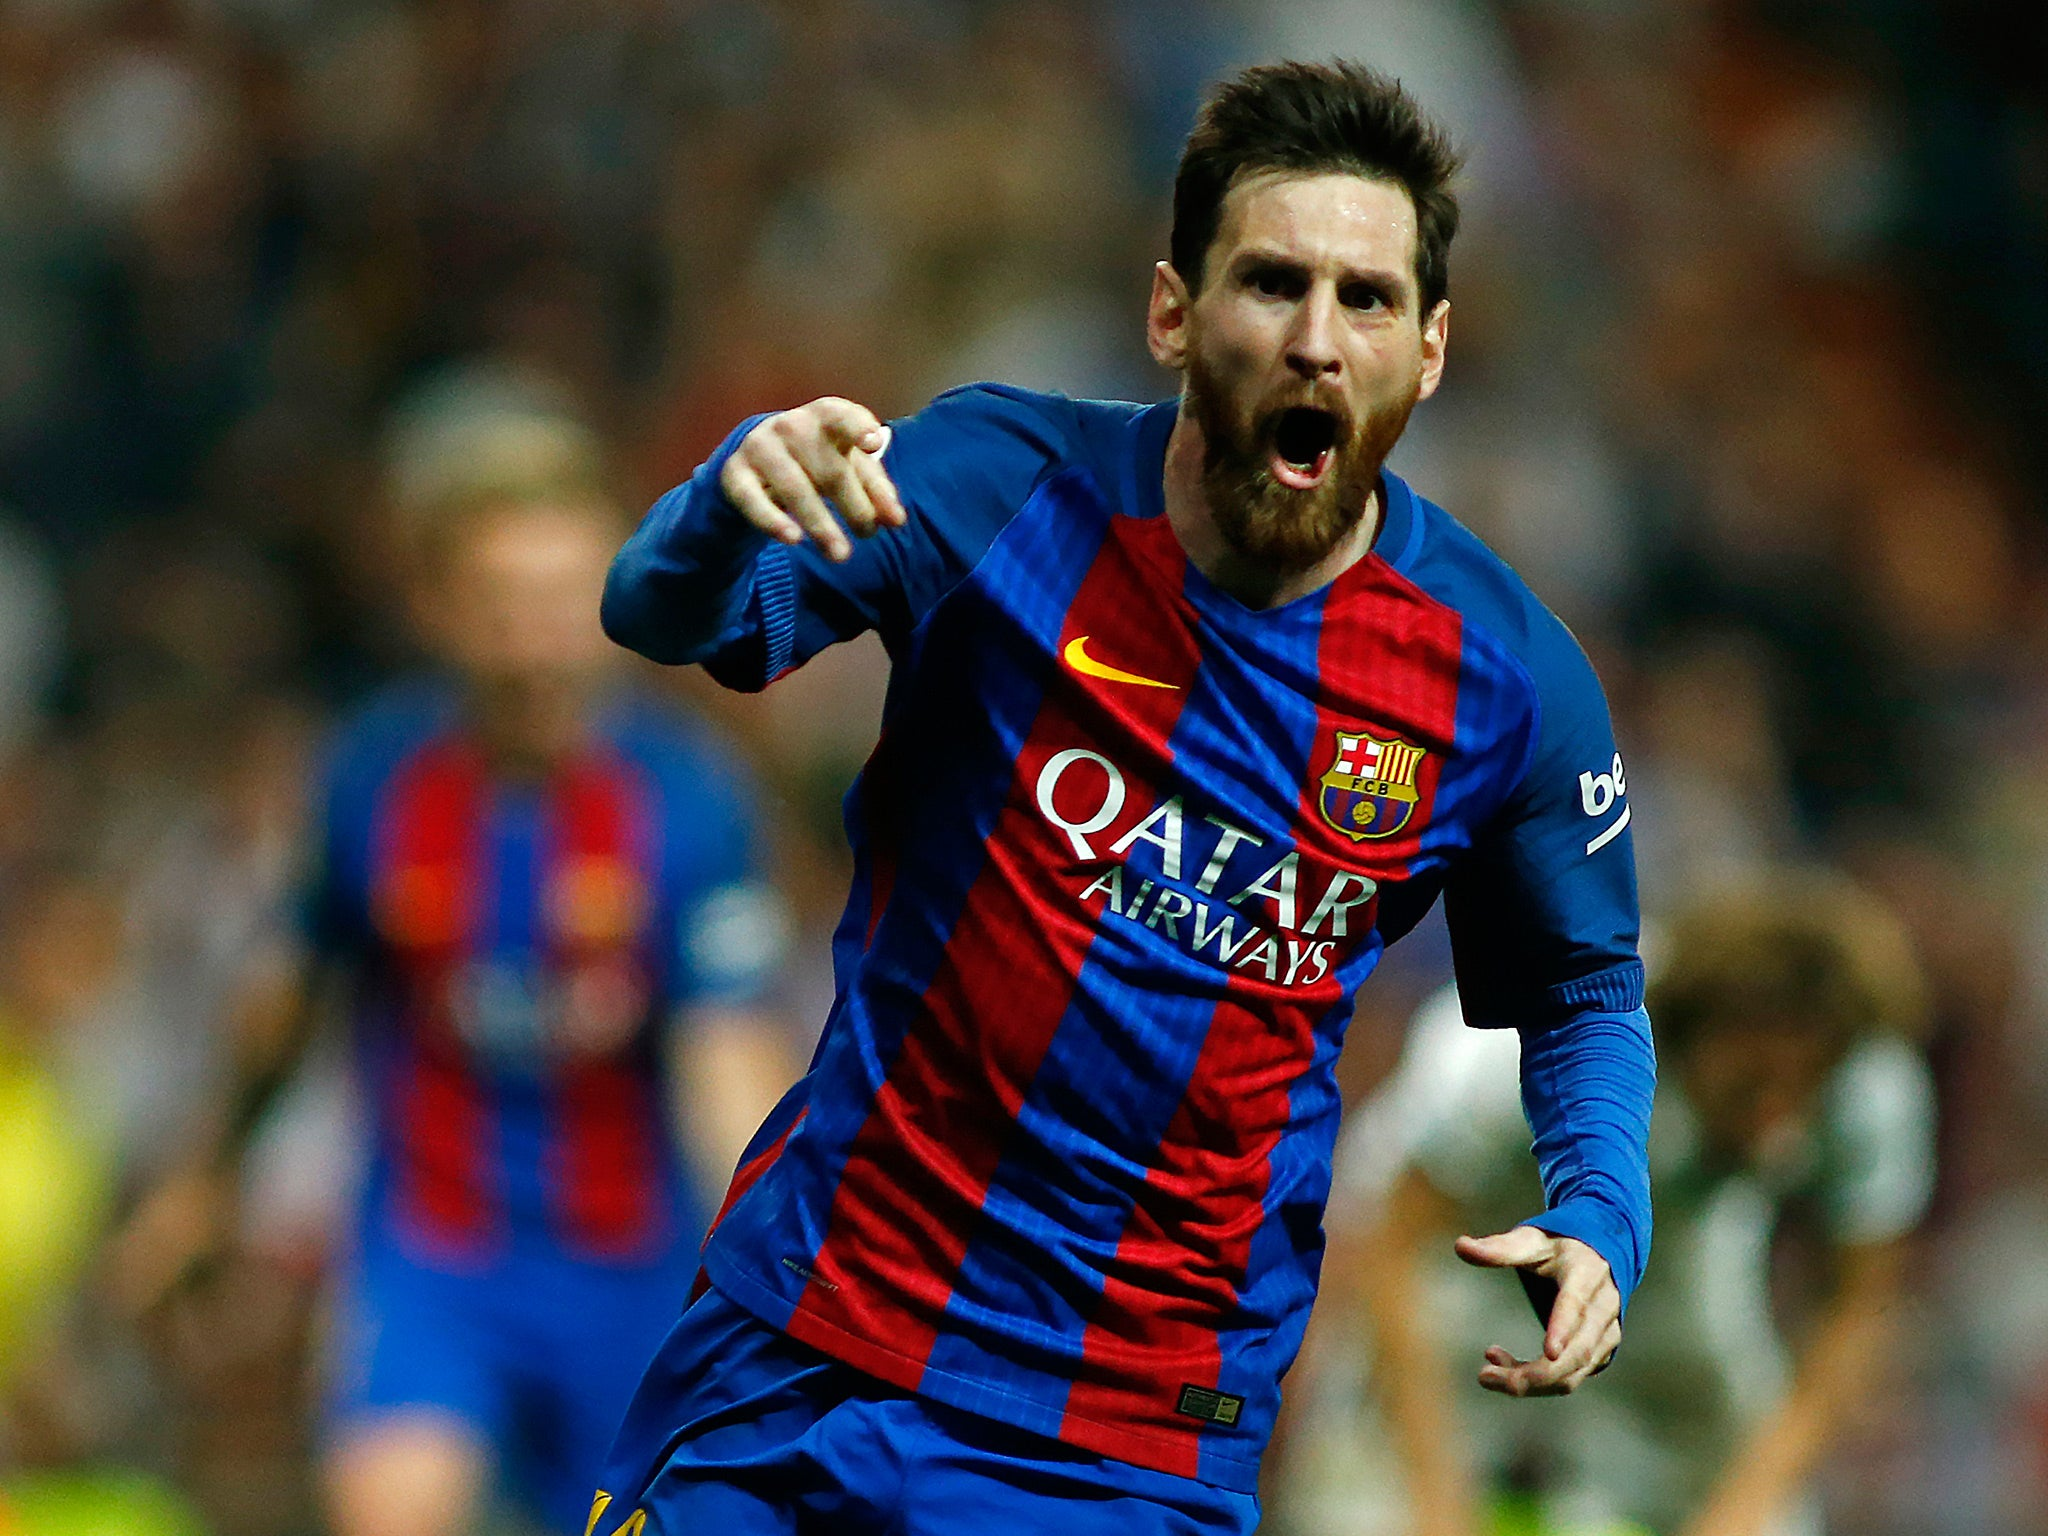 lionel HD wallpaper for download